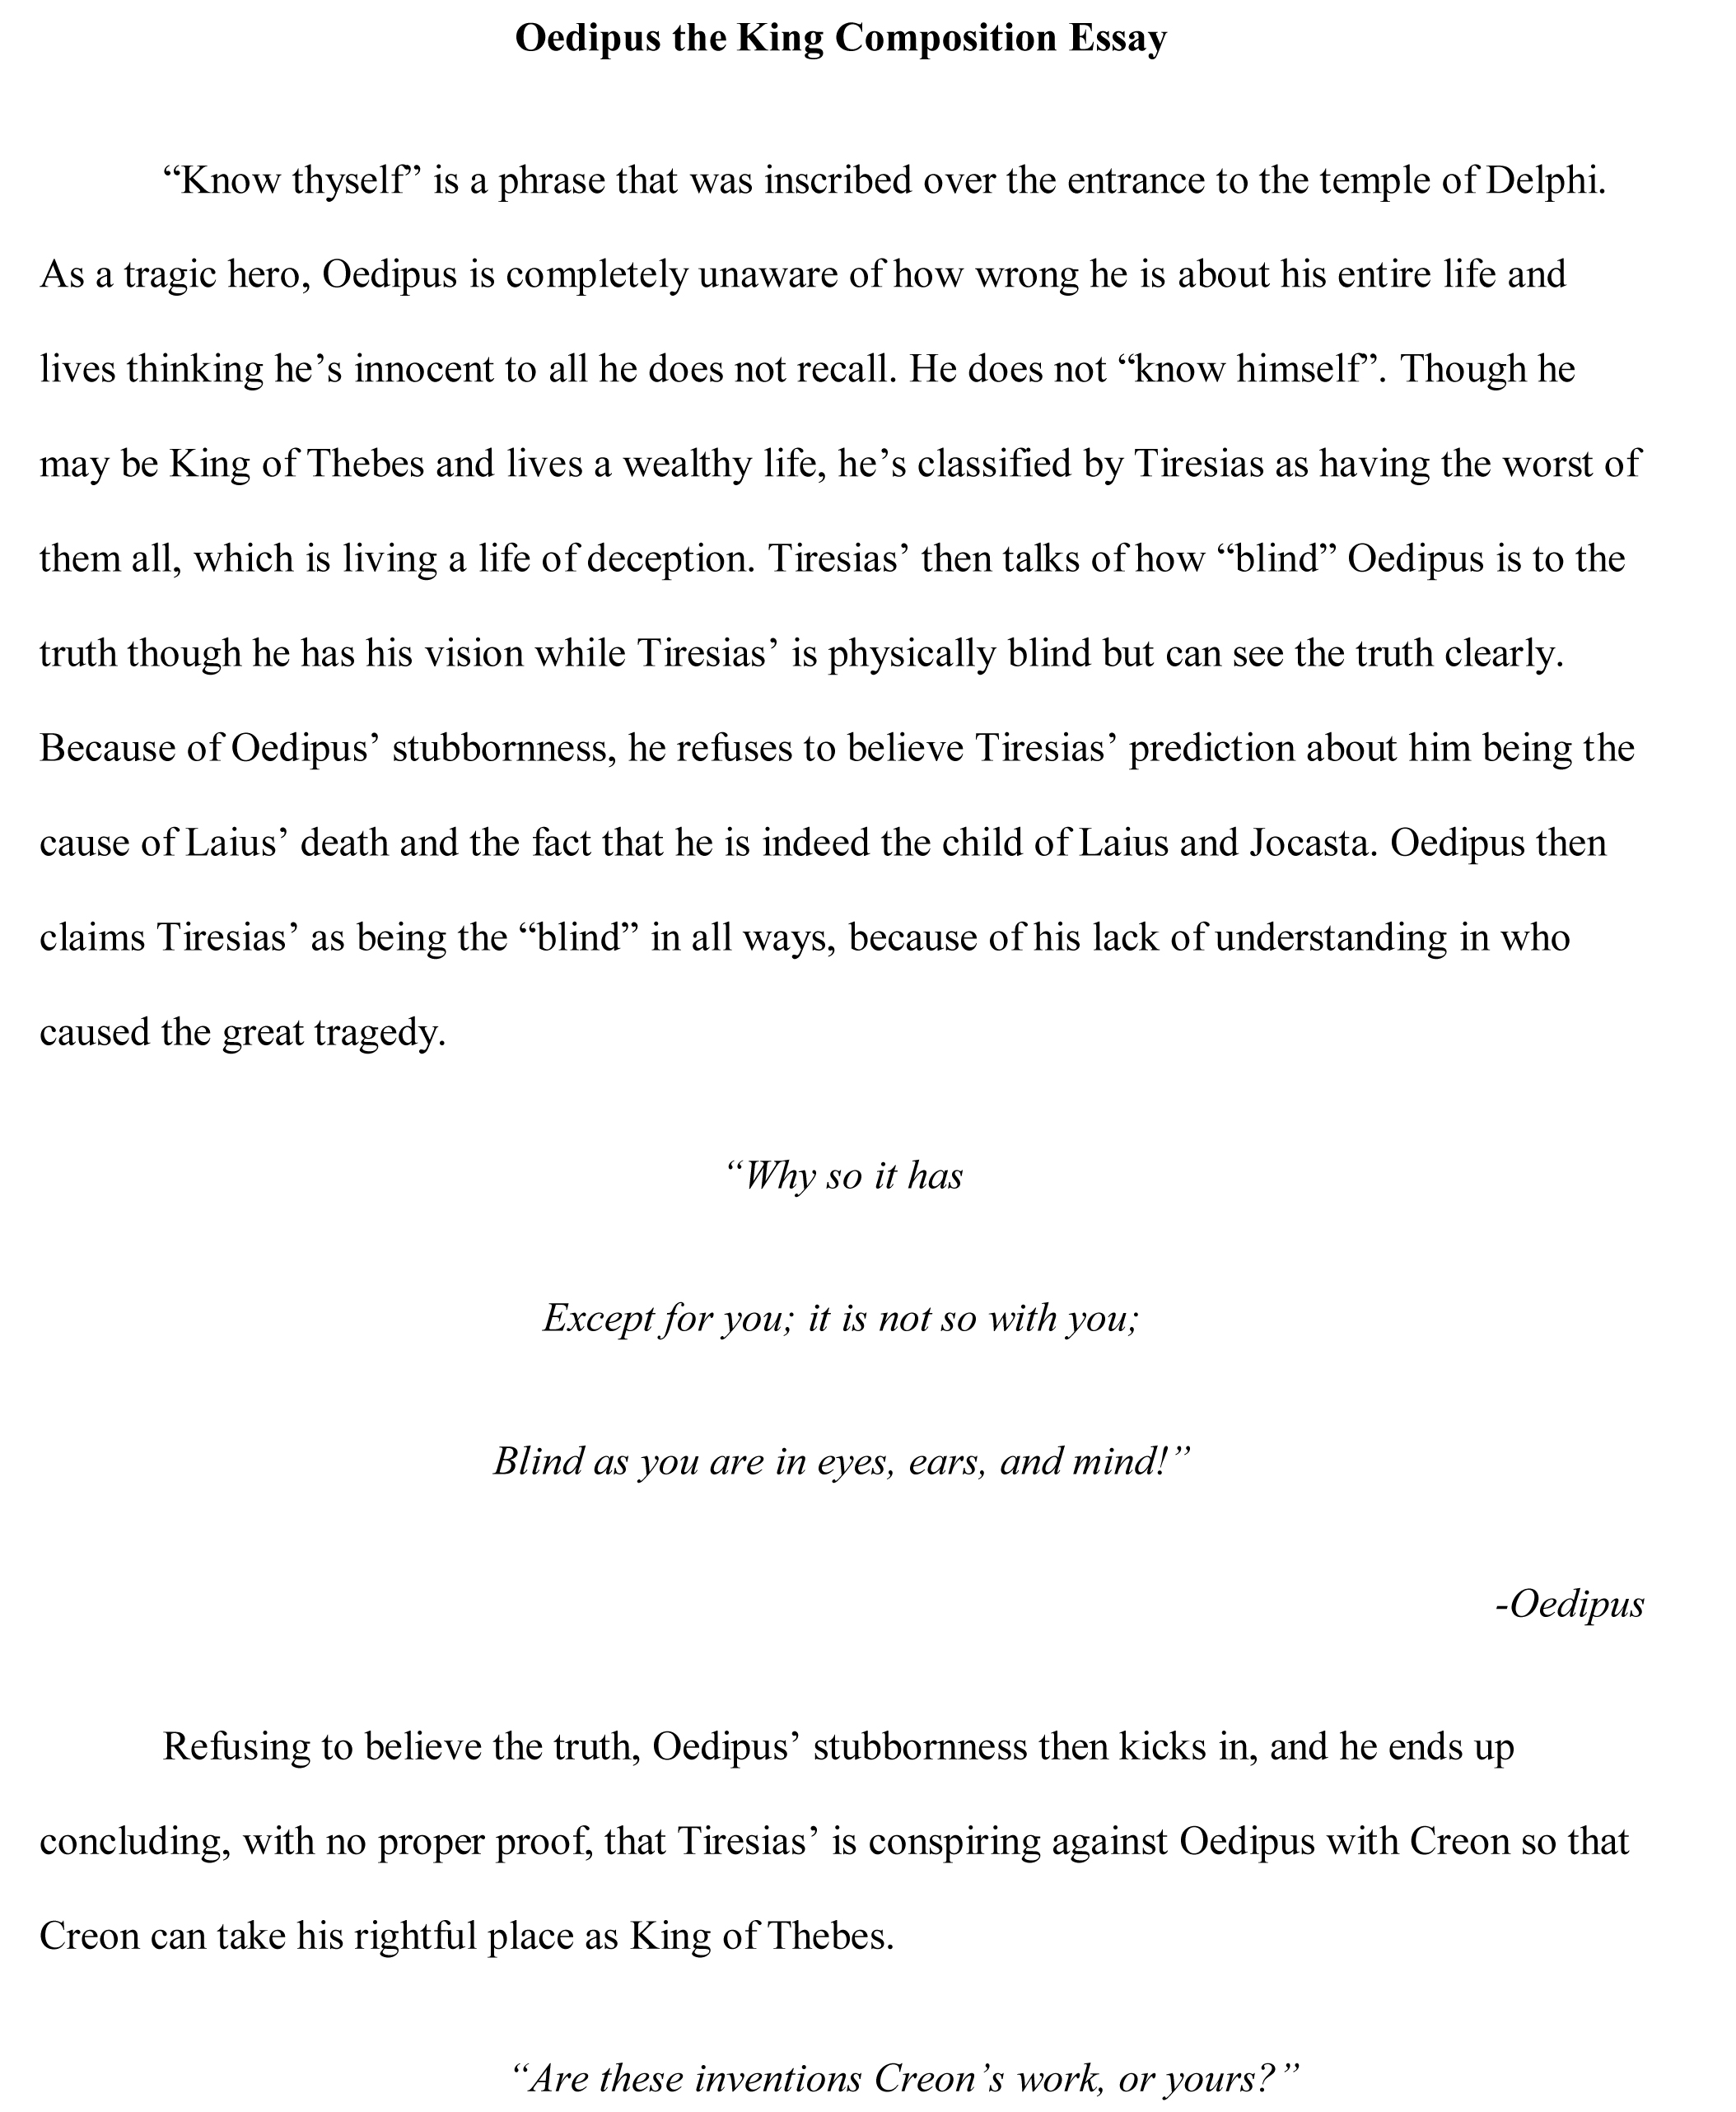 007 Essay Example Oedipus Free Sample Prompt Incredible Examples College Writing For 4th Grade Prompts Expository High School Full